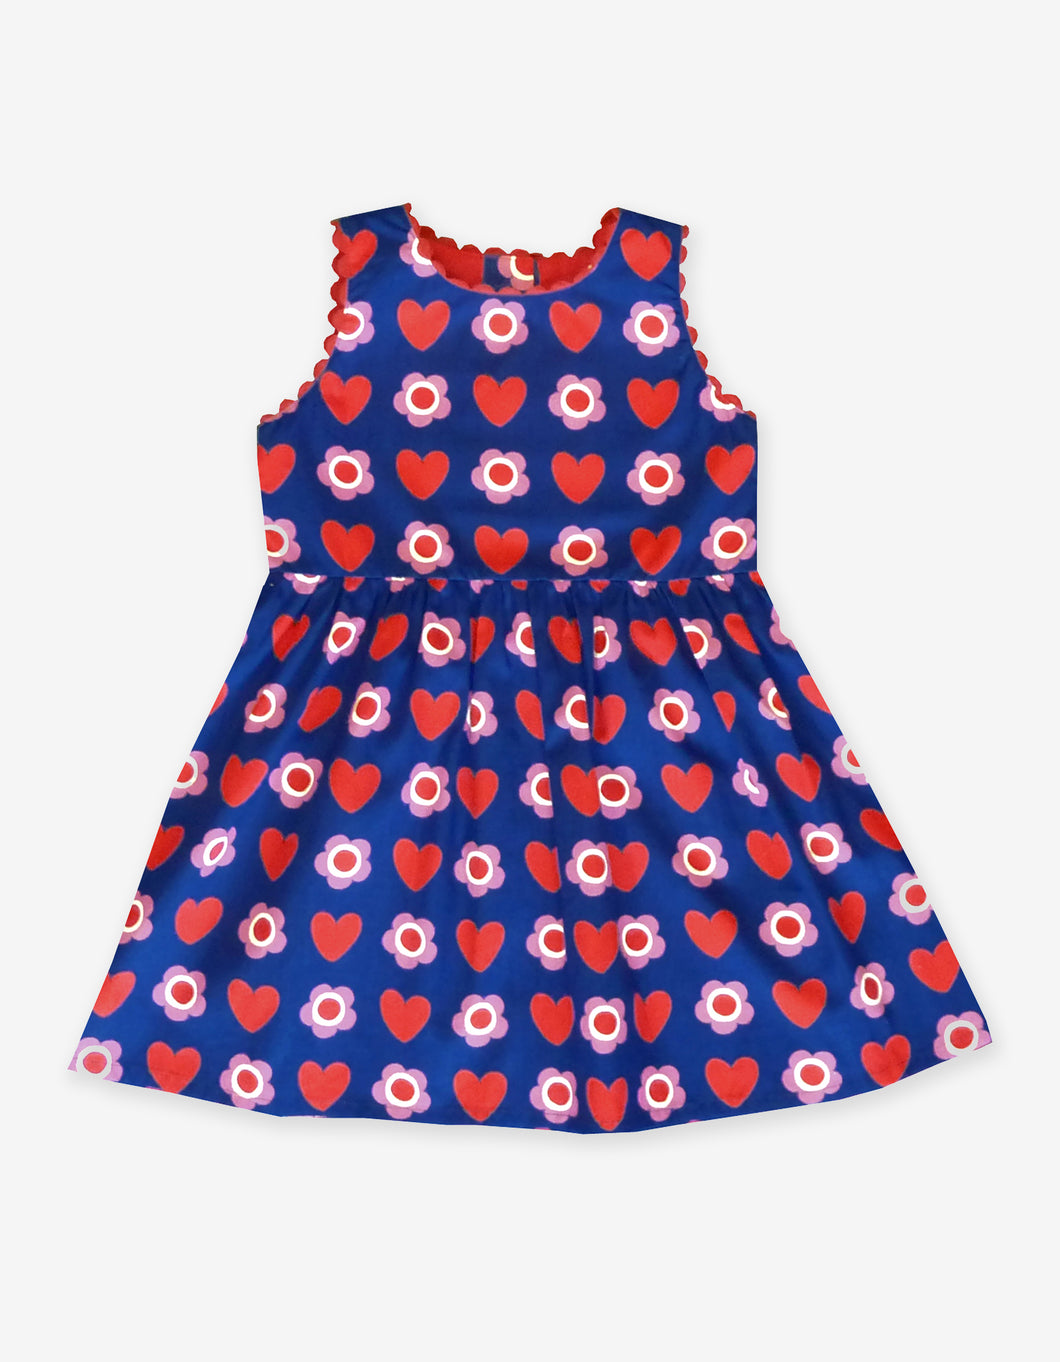 Heart Flower Party Dress